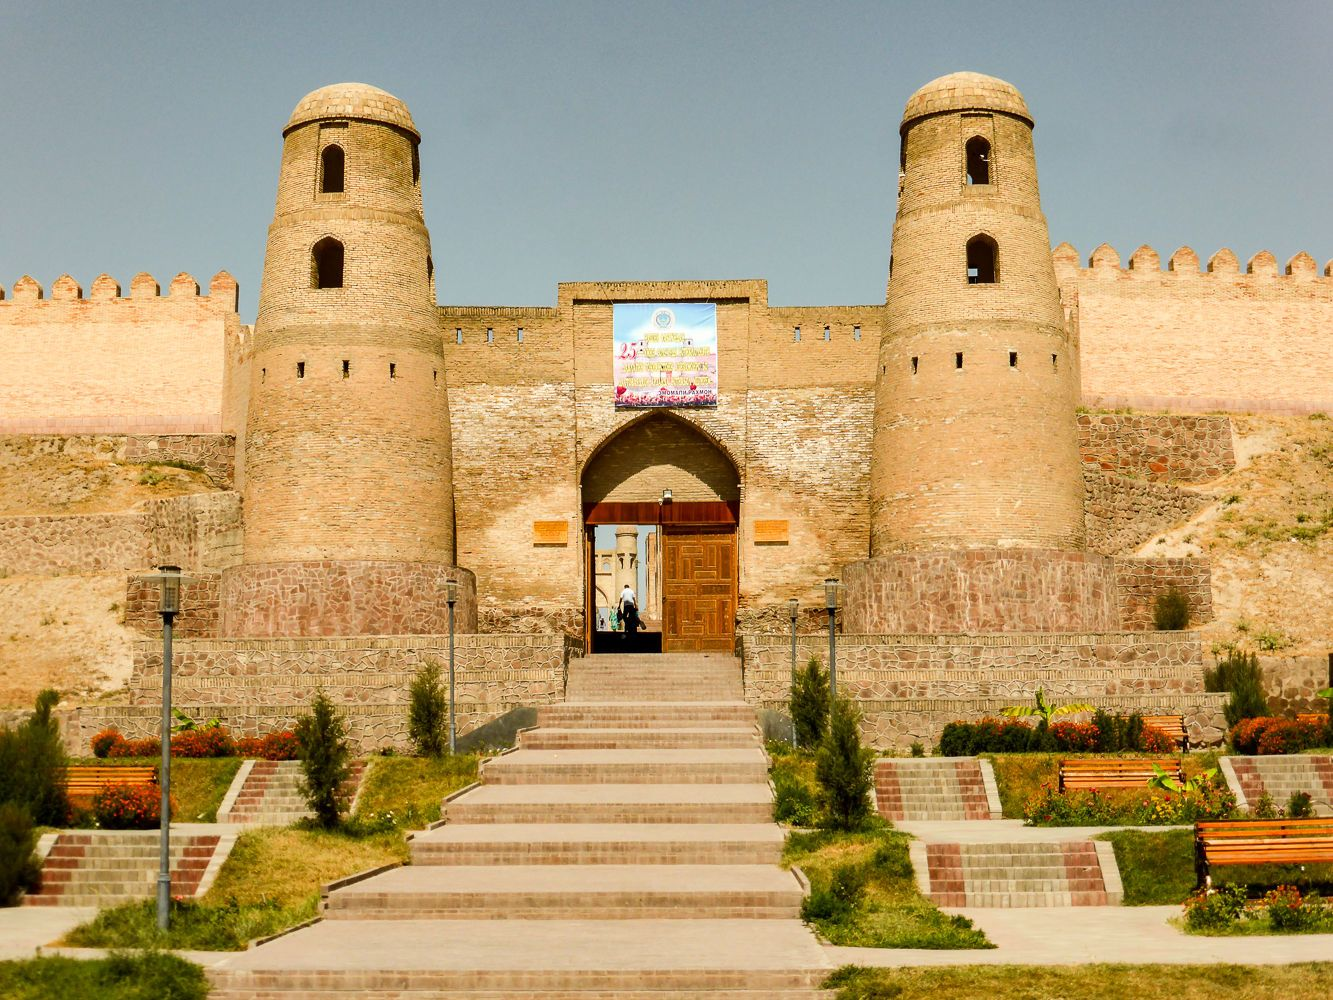 Hisor Fortress is one of the top places to visit in Central Asian Silk Road Tours